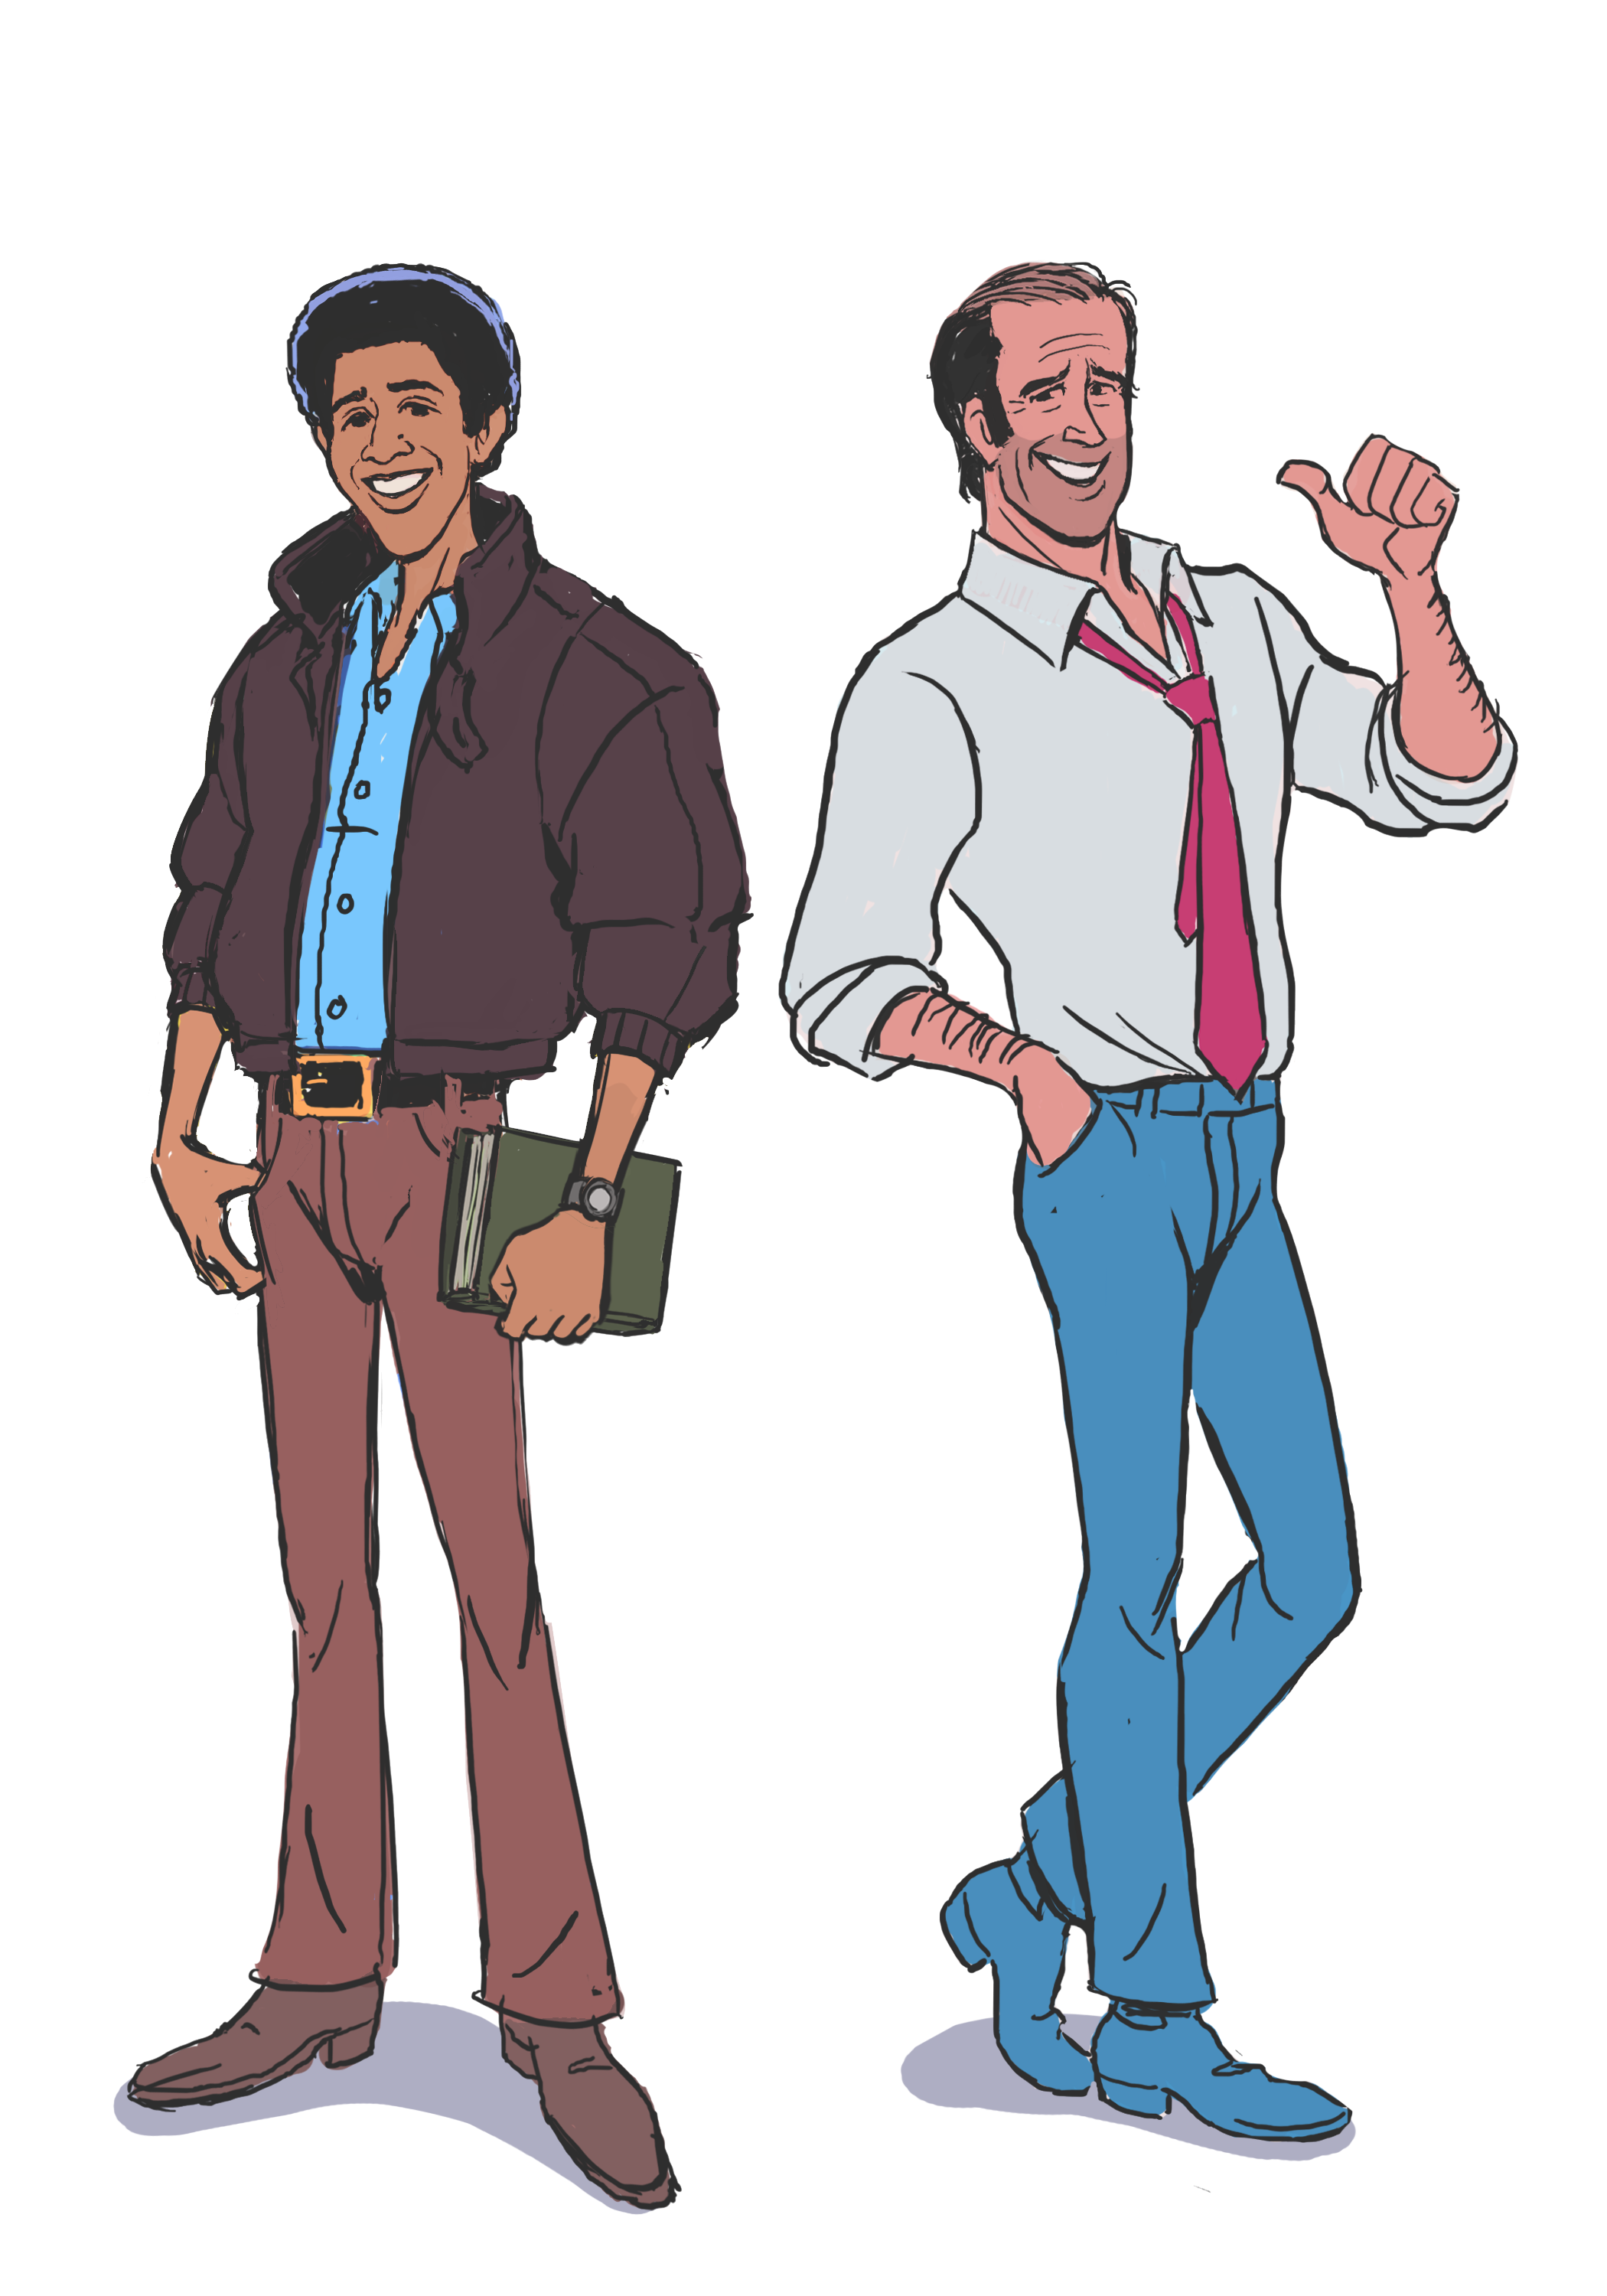 Barry&Joe_rough_ch_layers_rev_transparent.png